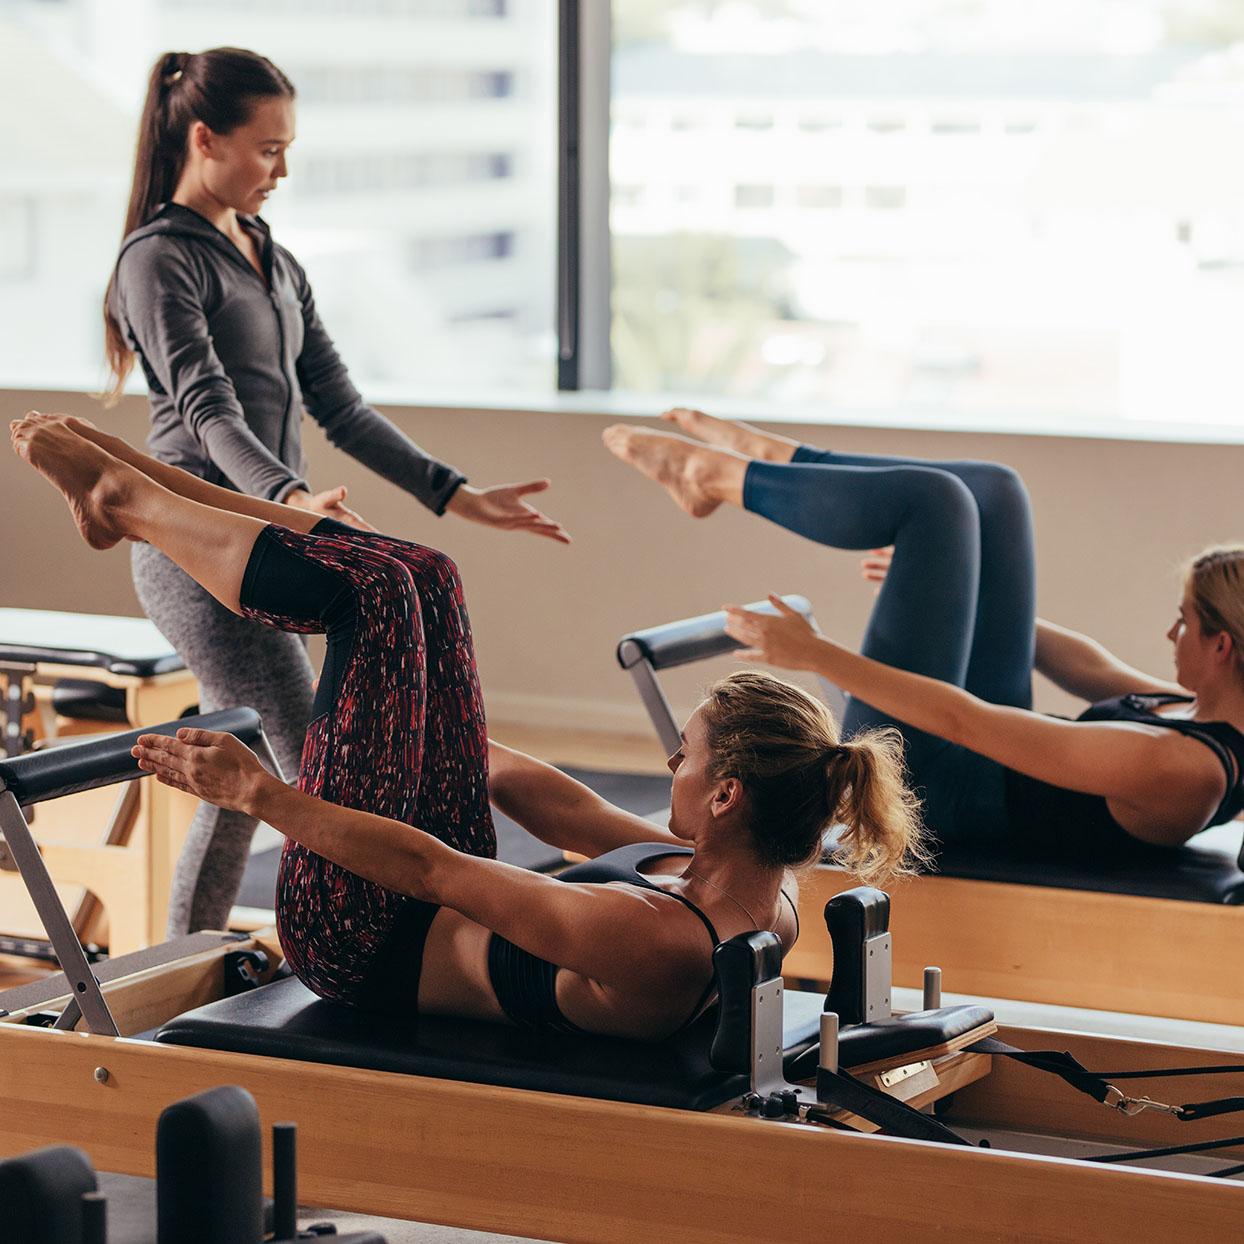 Pilates benefits can be realized by using a reformer at a class.